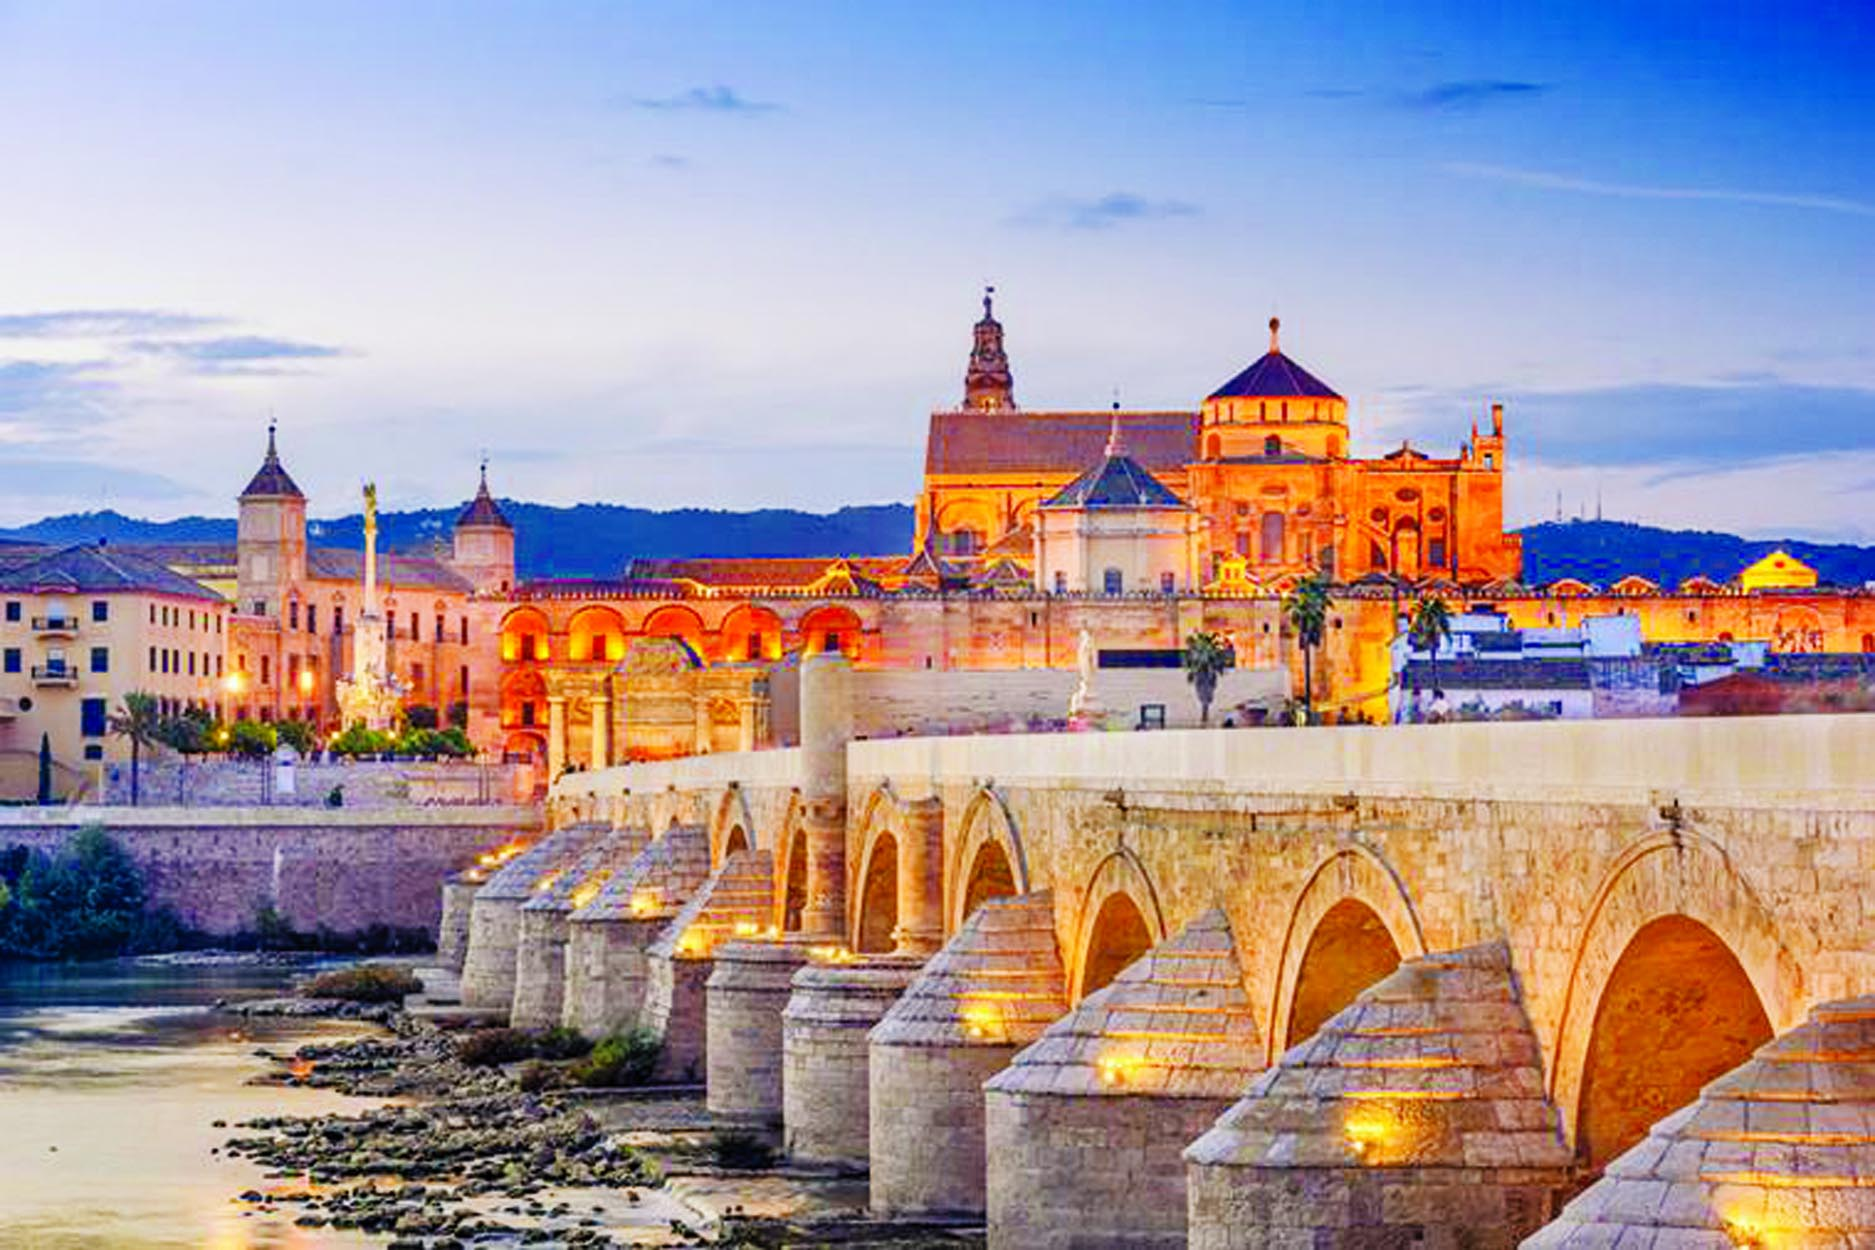 Mezquita-Catedral de Cordoba in Spain offers a peek into a past where civilisations cleaved and coalesced in equal measures. It offers multi-layered way of seeing the world -- Visigoth, Roman, Byzantine, Caliphate, Arab, Gothic, Renaissance and Baroque, all under one roof